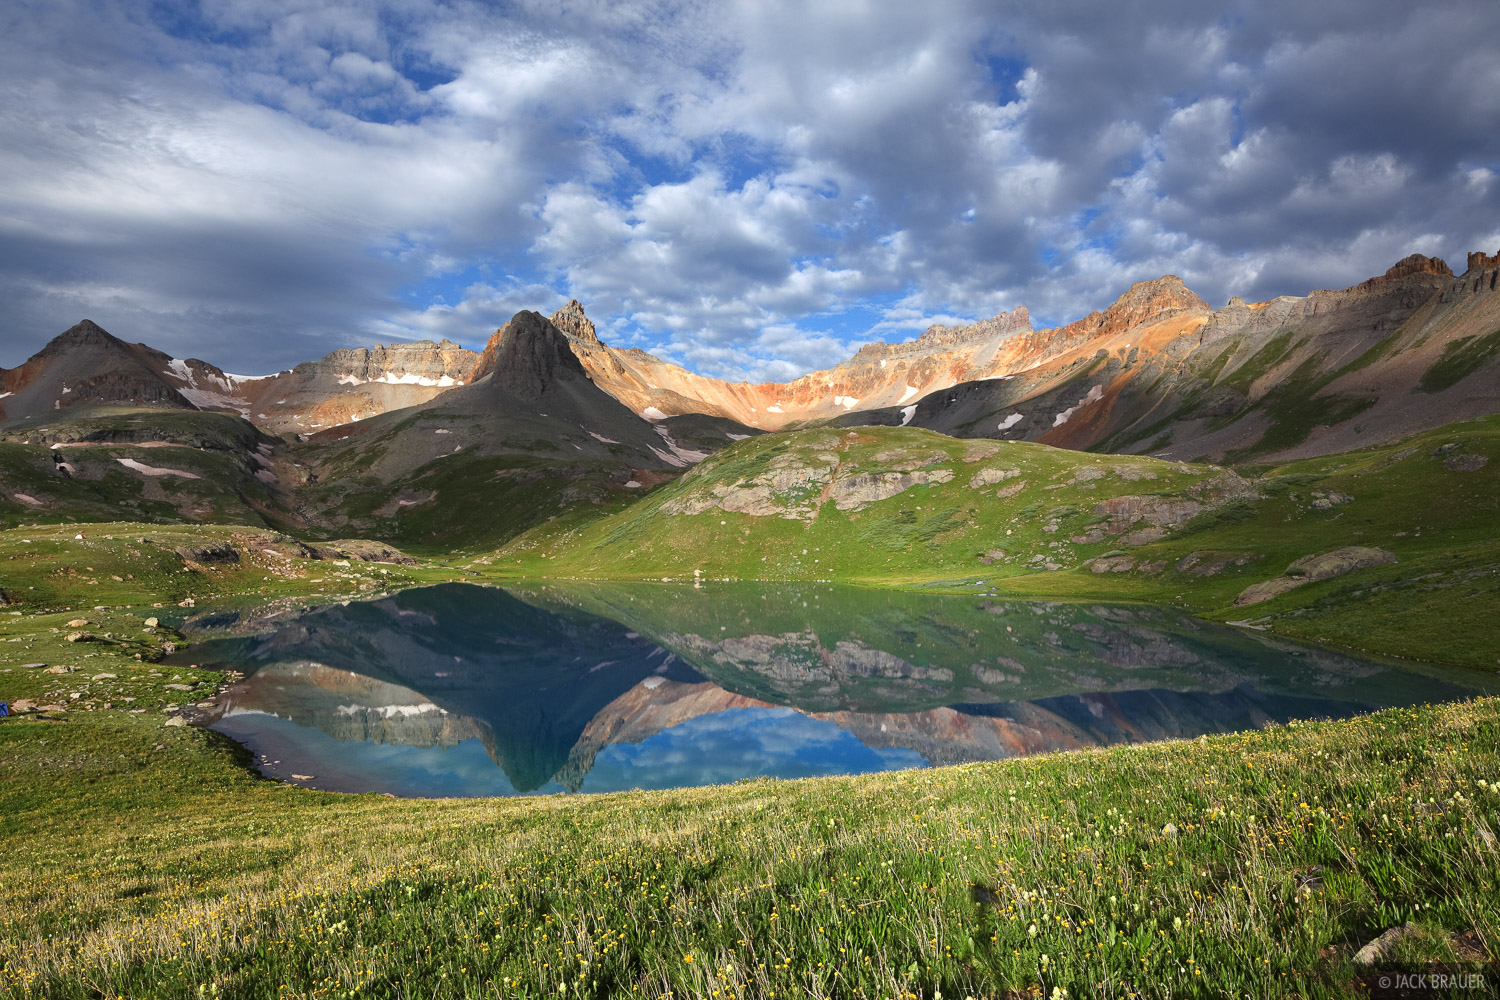 Ice Lakes, Colorado, San Juan Mountains, tundra, July, photo